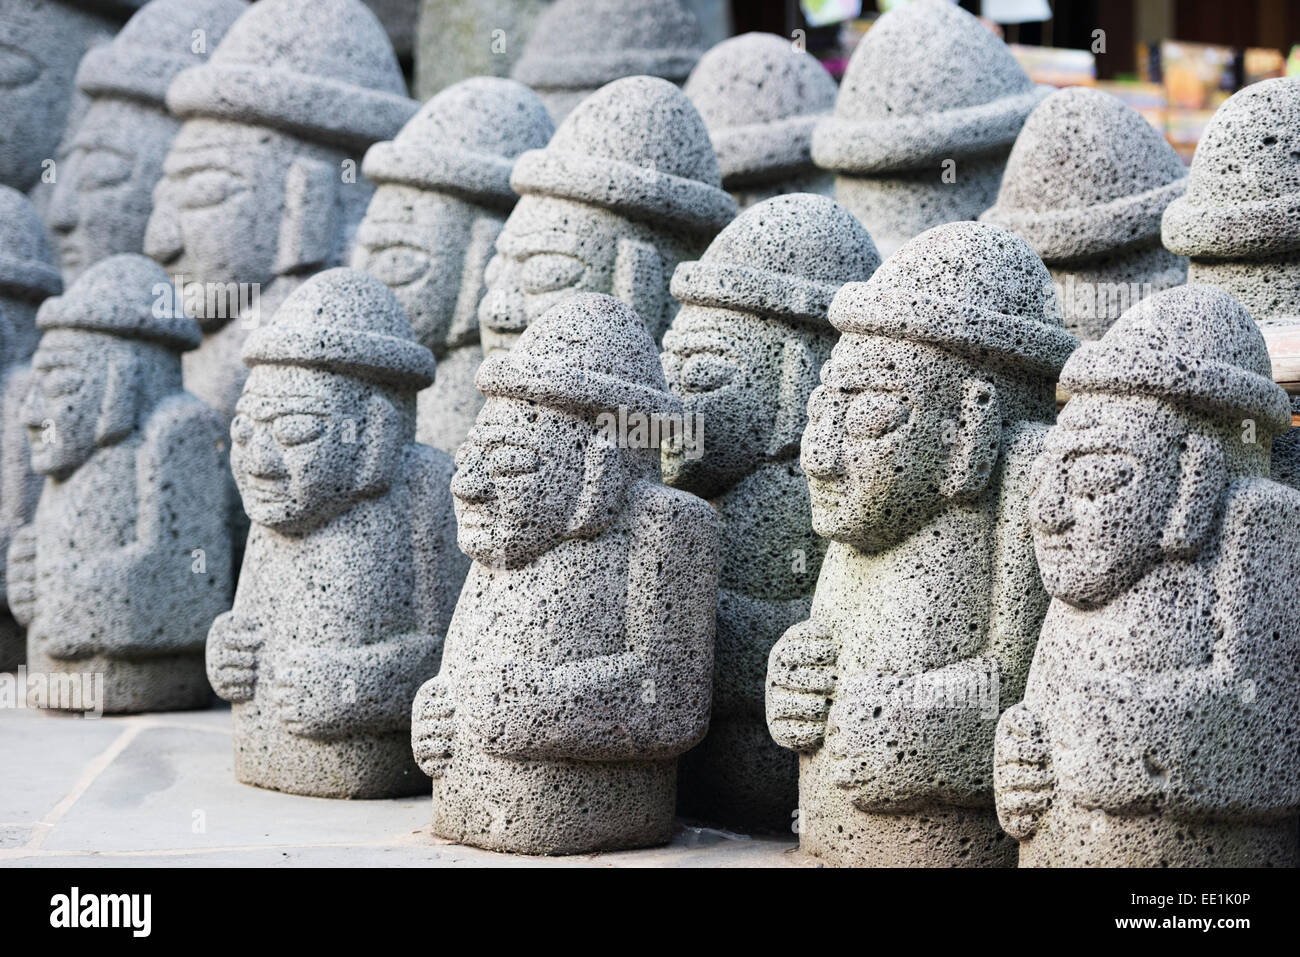 Dol hareubang (harubang) protection and fertility statues, Seogwipo City, Jeju Island, South Korea, Asia - Stock Image